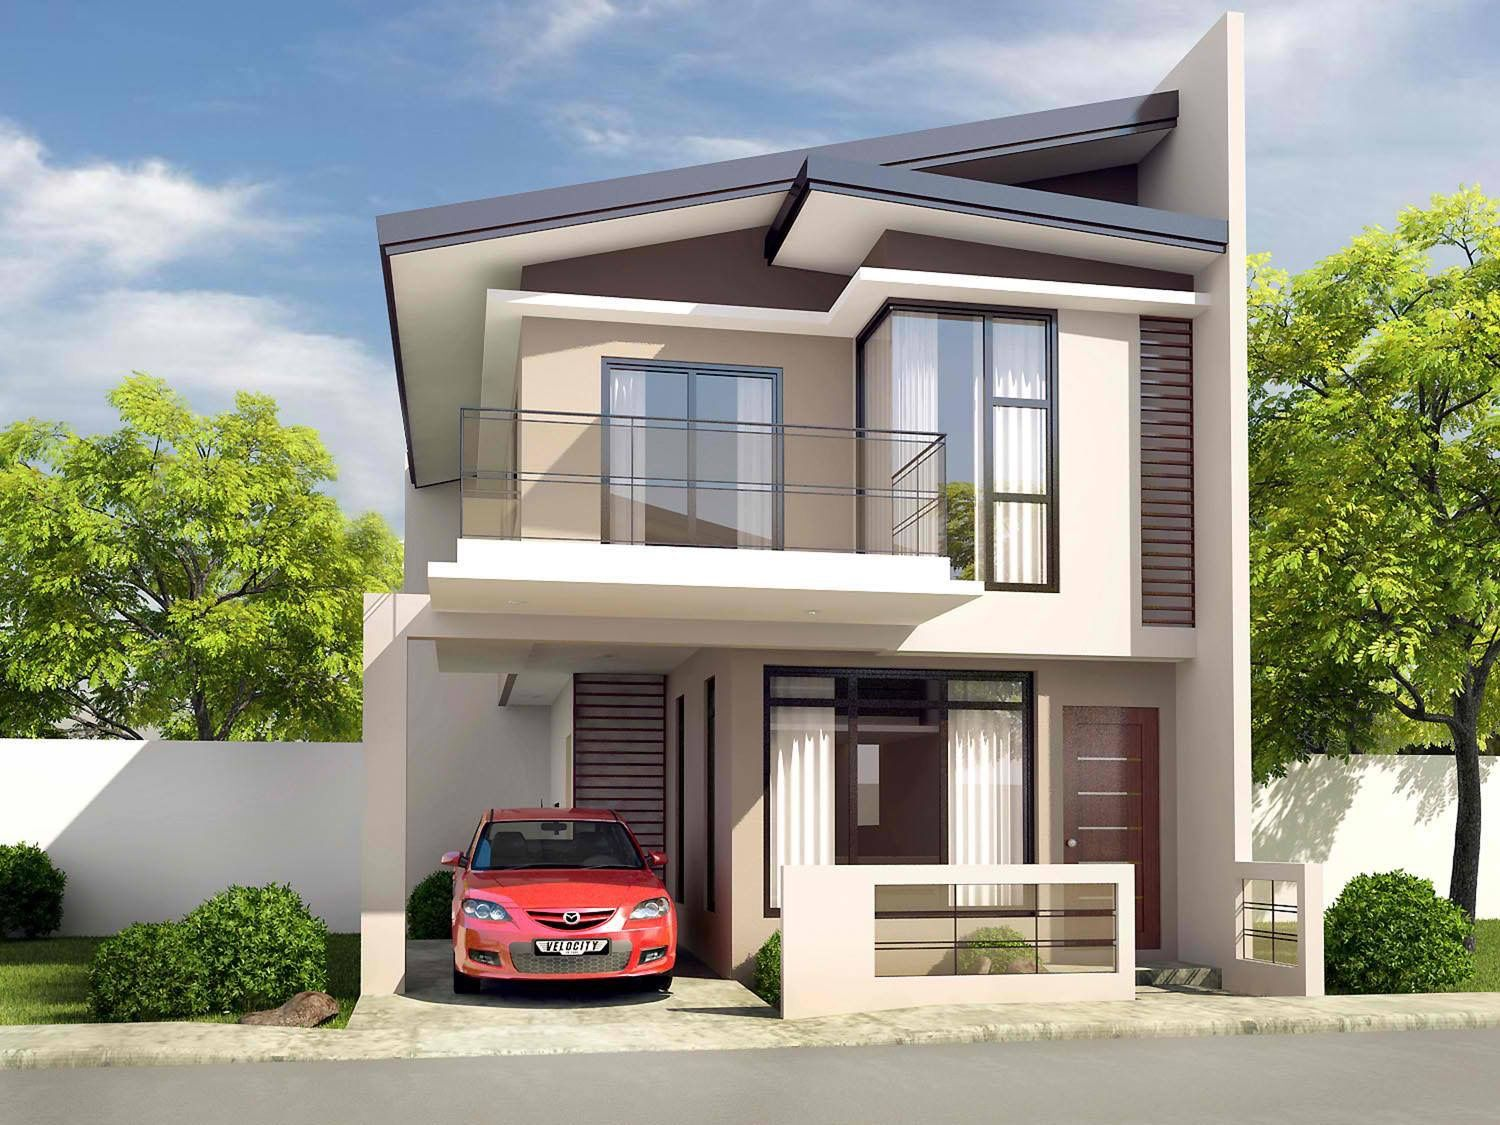 Cebu real estate for sale in talisay city cebu house and lot for sale in talisay city alberlyn south